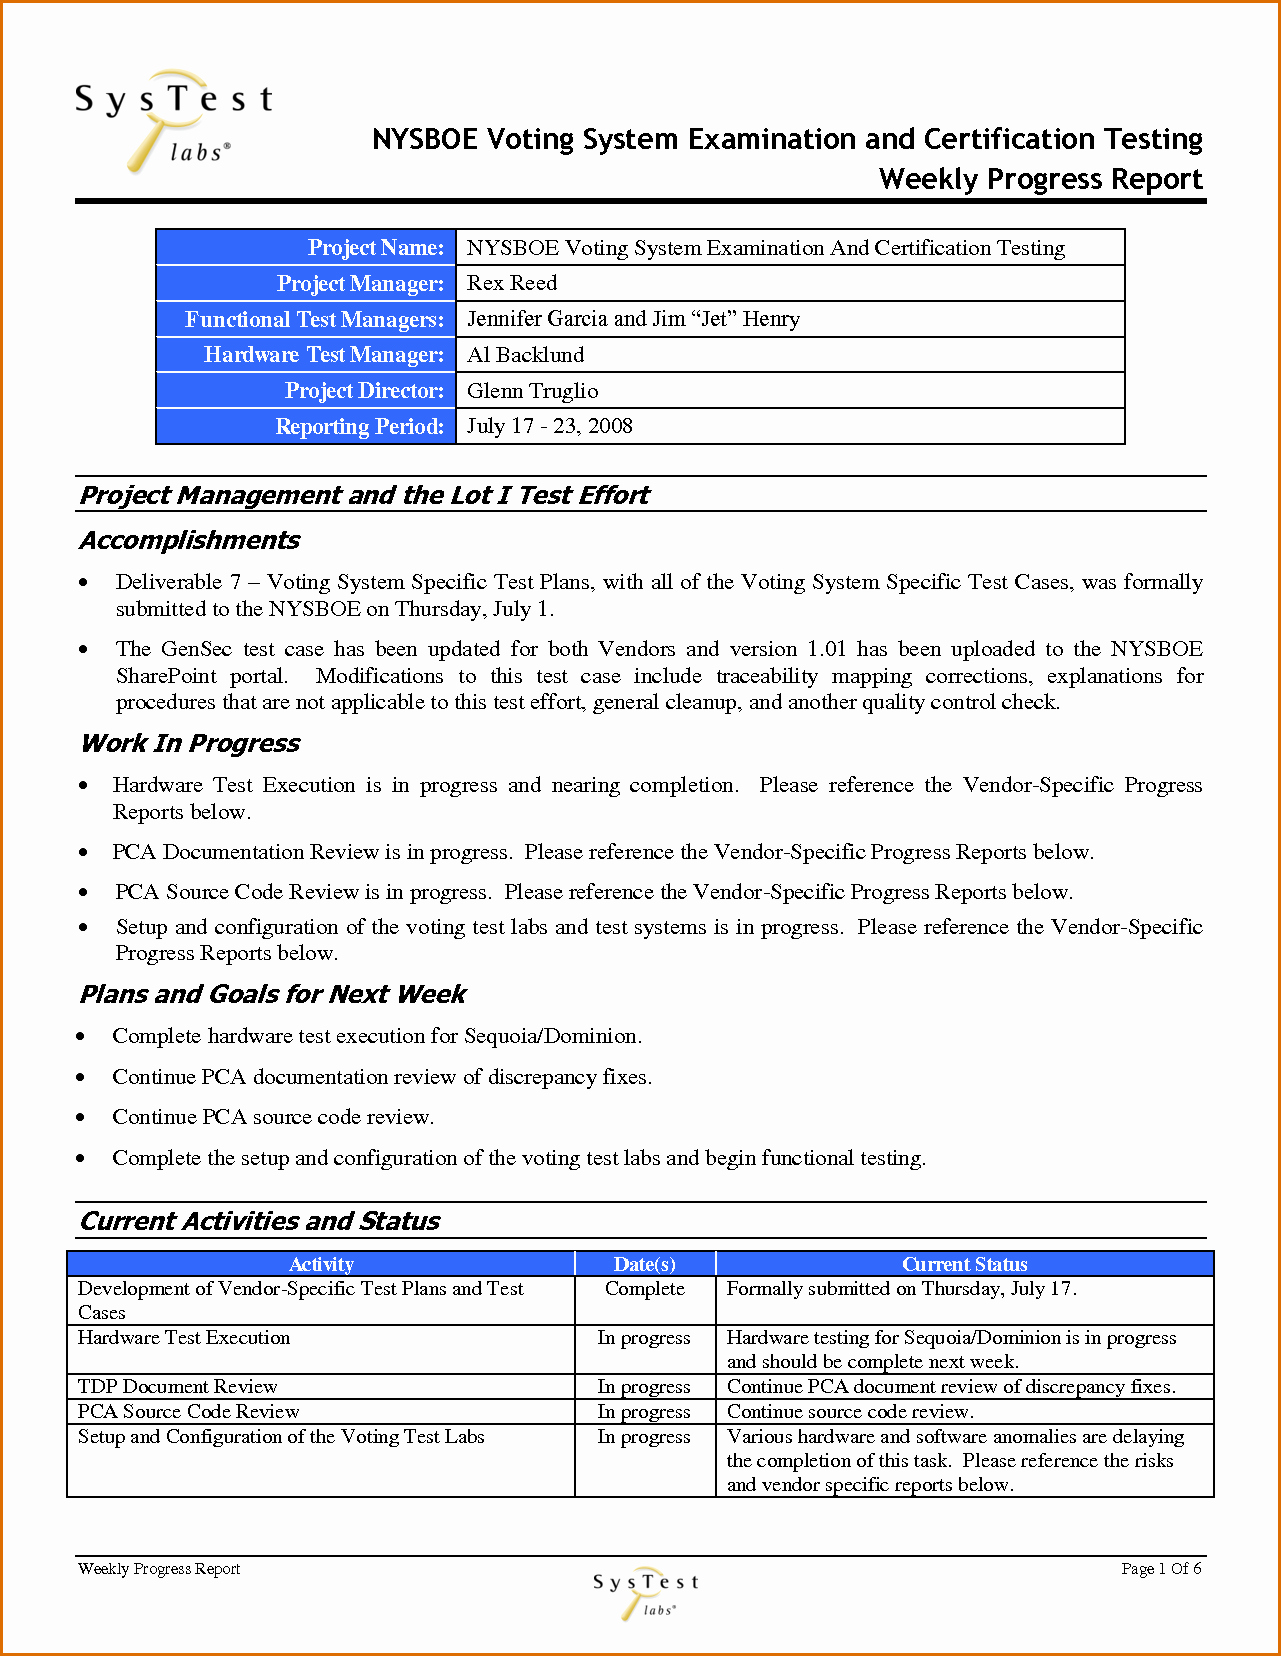 Project Management Progress Report Template Luxury 12 Weekly Progress Report Template